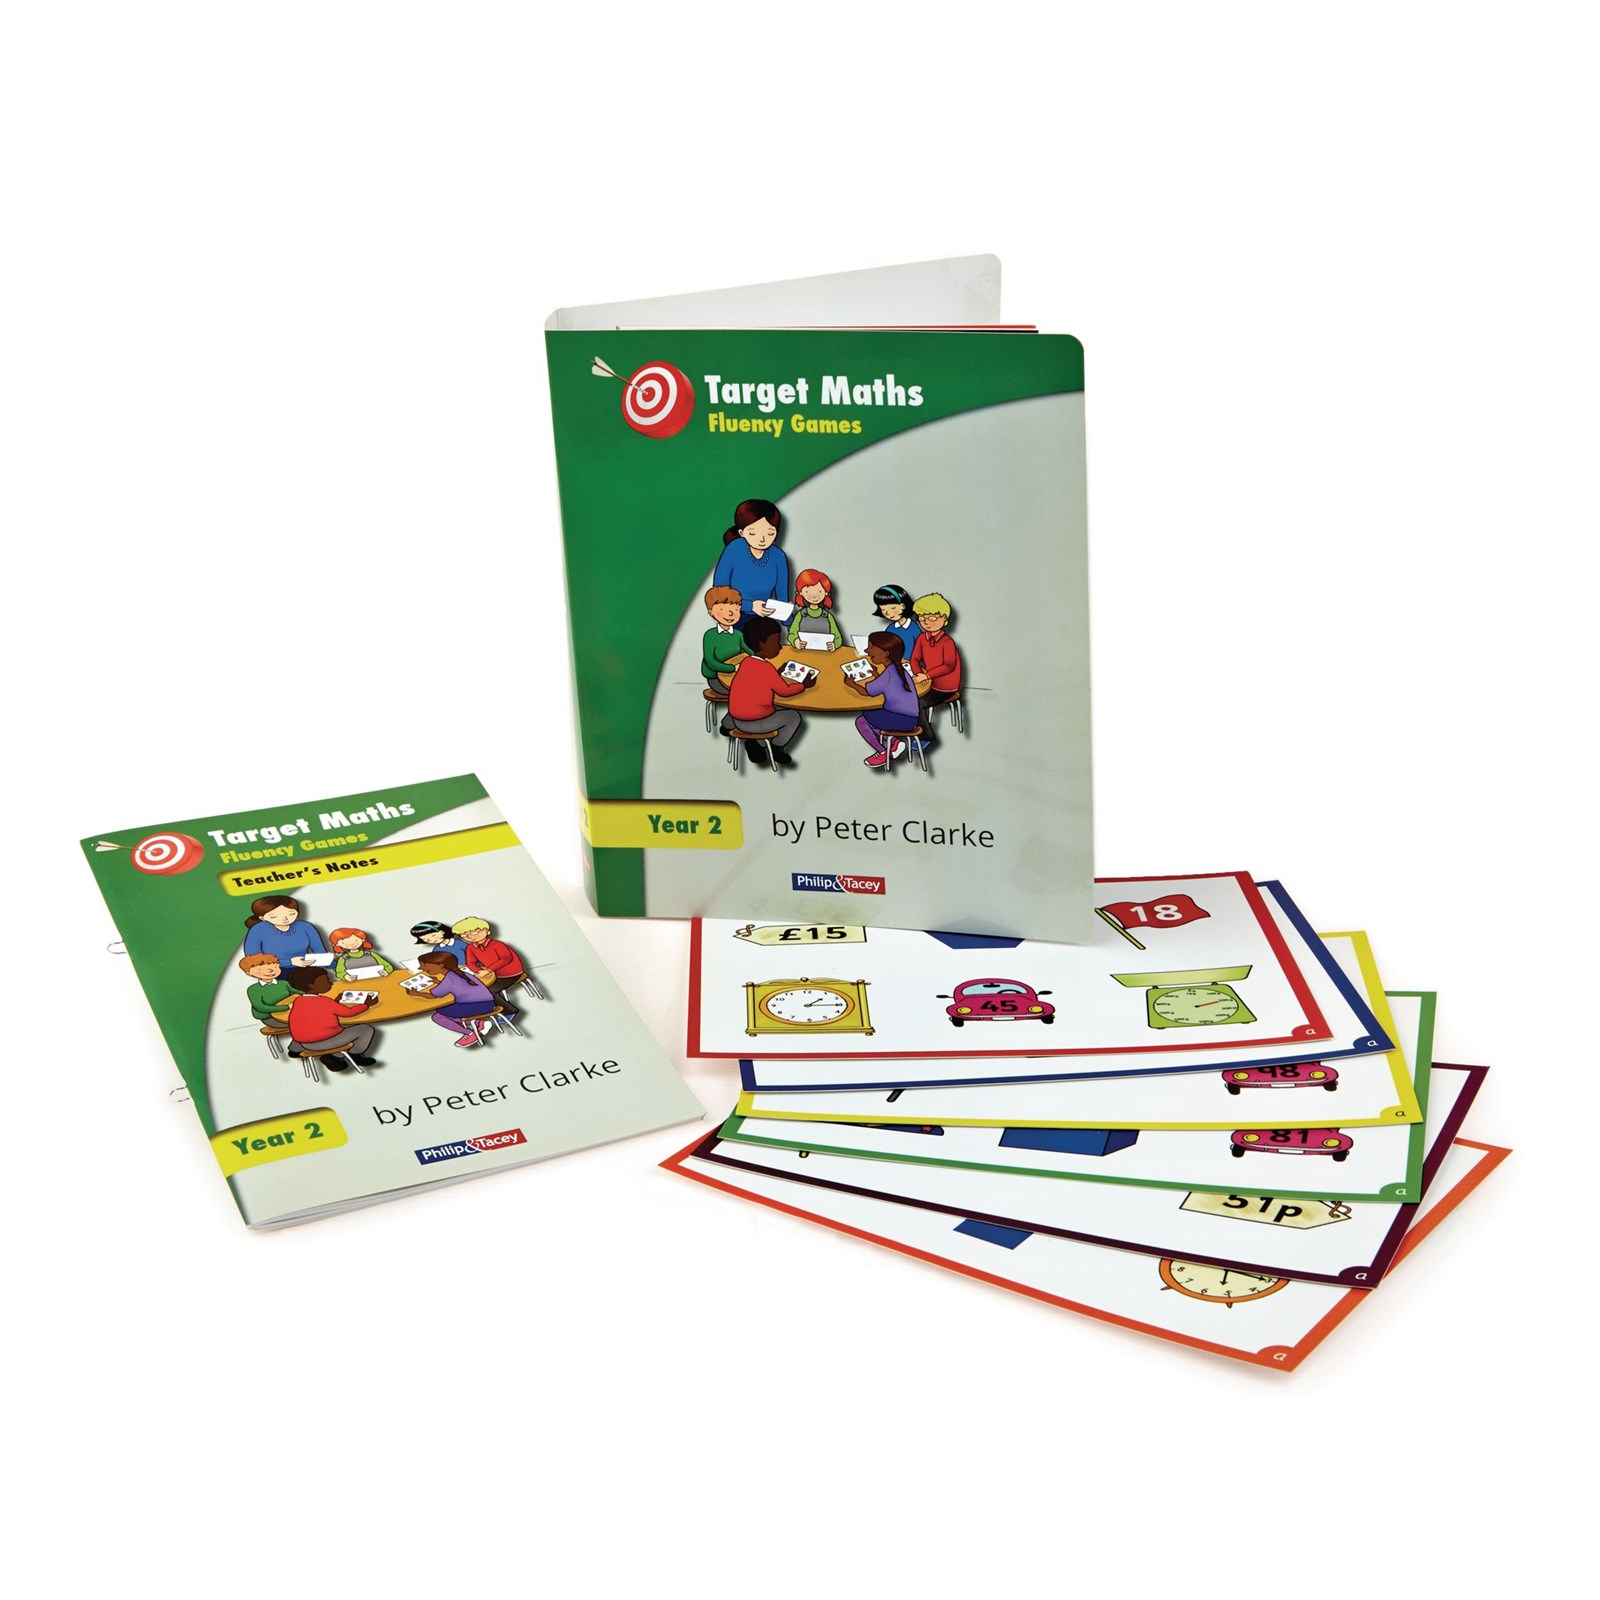 Target Maths Fluency Games by Peter Clarke Year 2 | Hope Education